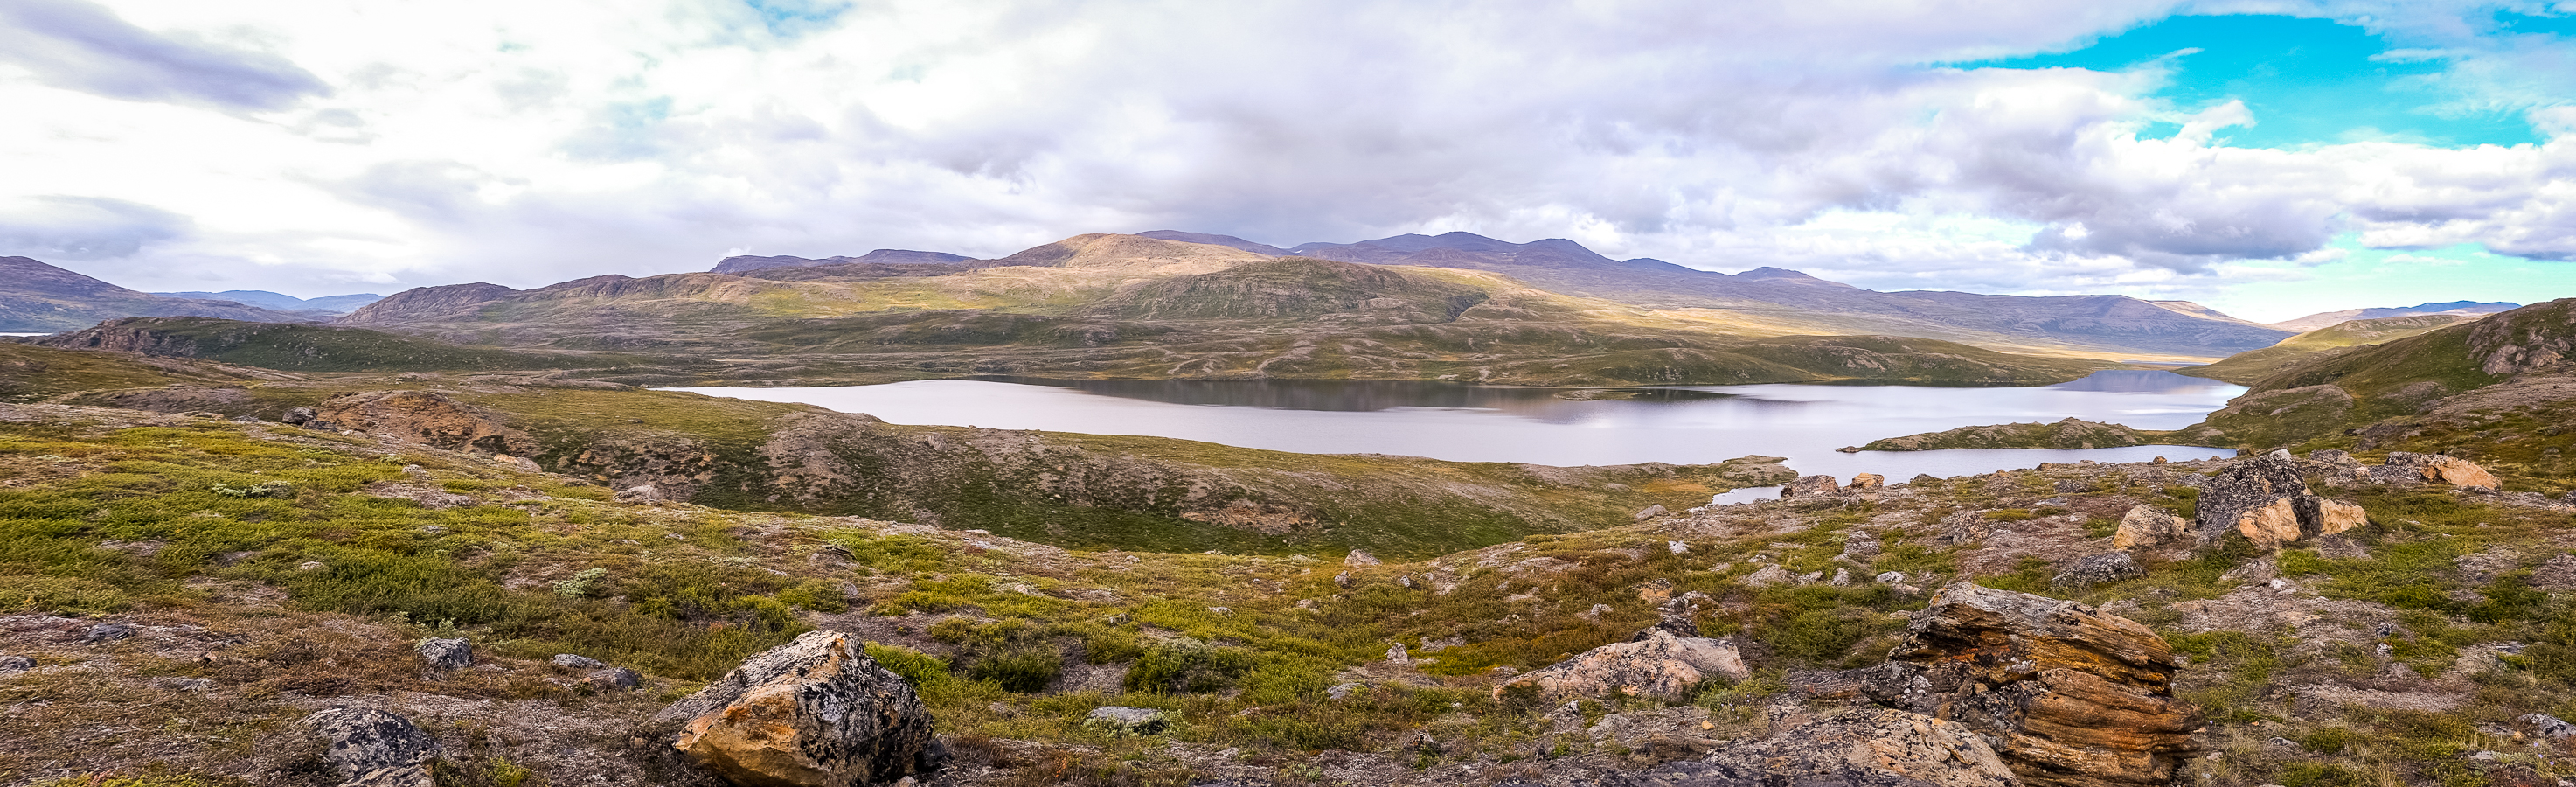 Panorama of the lake at the base of the Taseeqqap Saqqaa range - Arctic Circle Trail - West Greenland